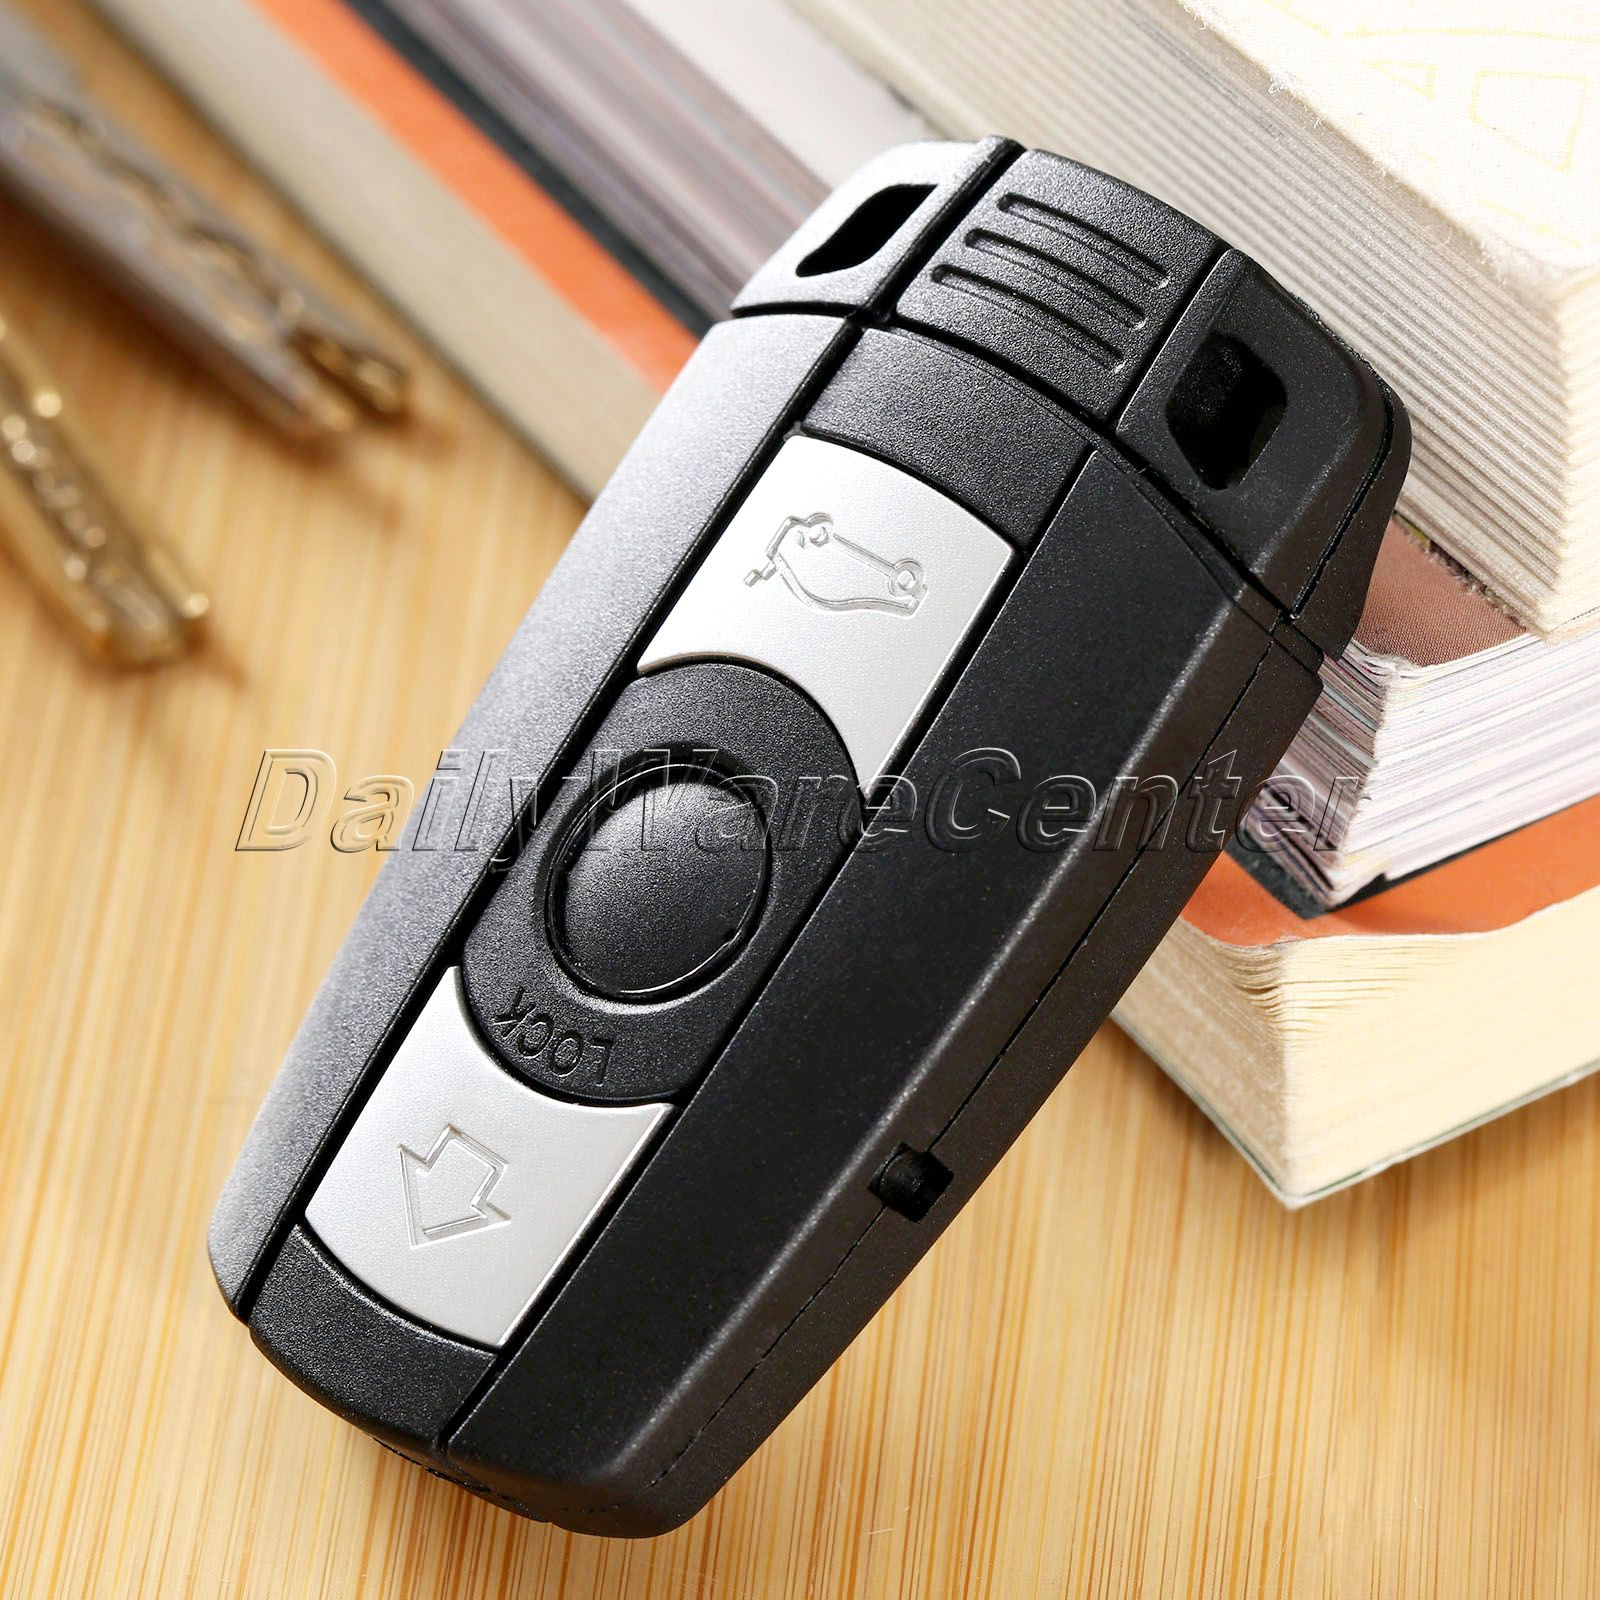 Replacement Shell Car Remote Key Case Cover For BMW 1 3 5 6 7 E Series BMW X5 X6 Z4 Smart Key Shell Blade Fob for BMW M3 M5 X5